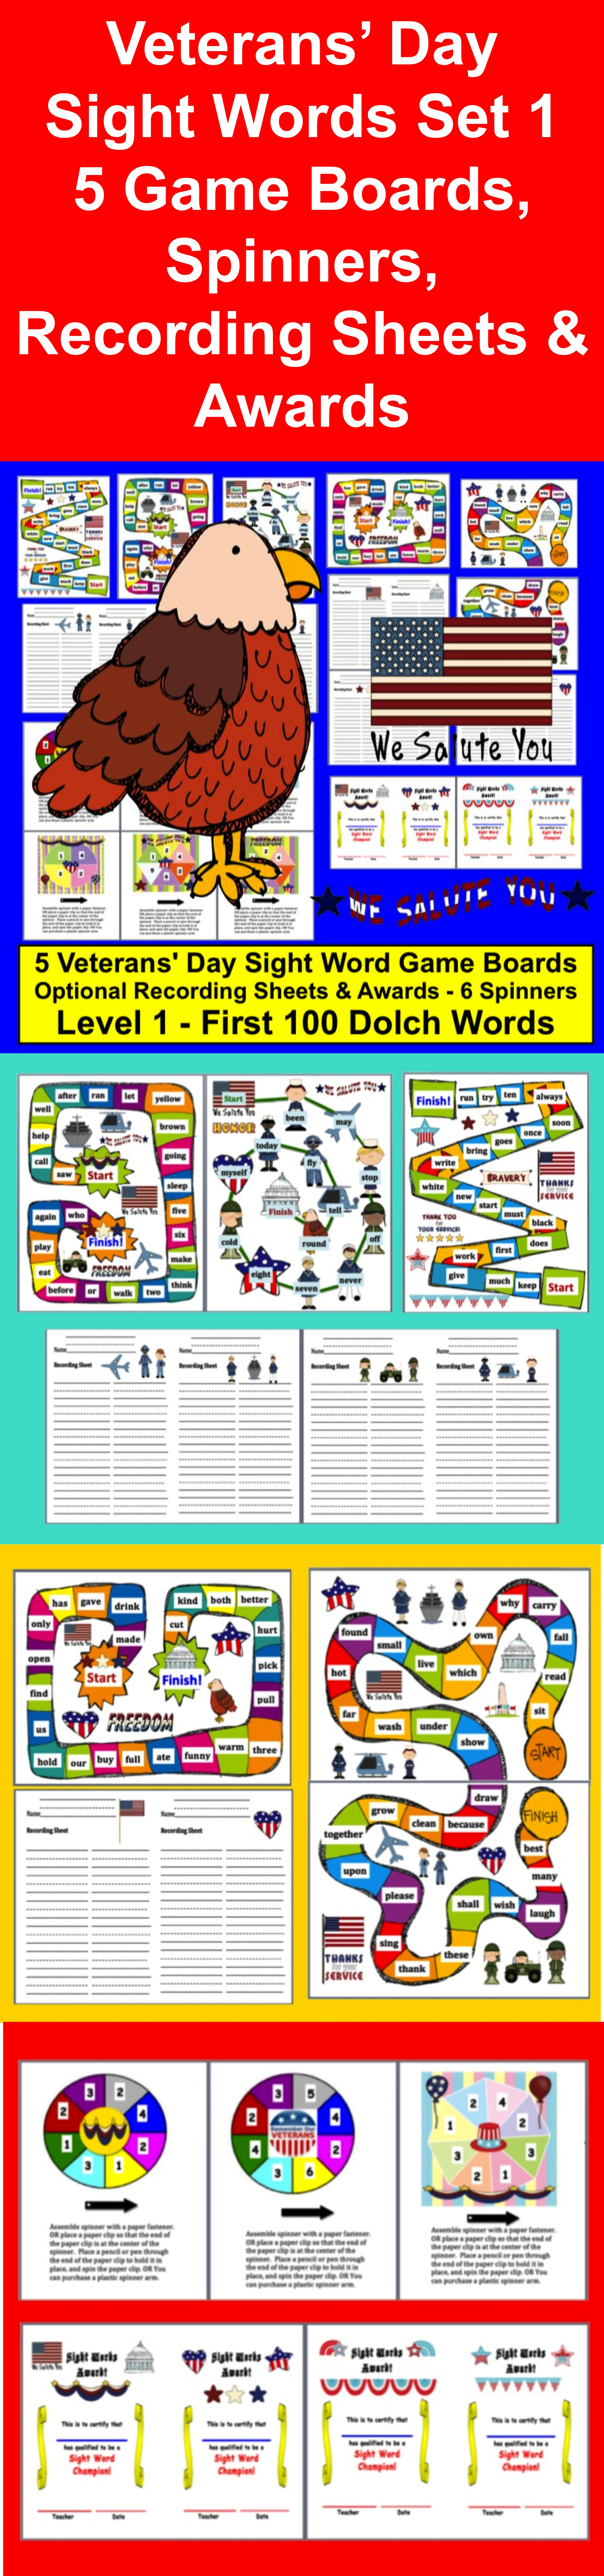 Veterans Day Sight Words Game Board Activities